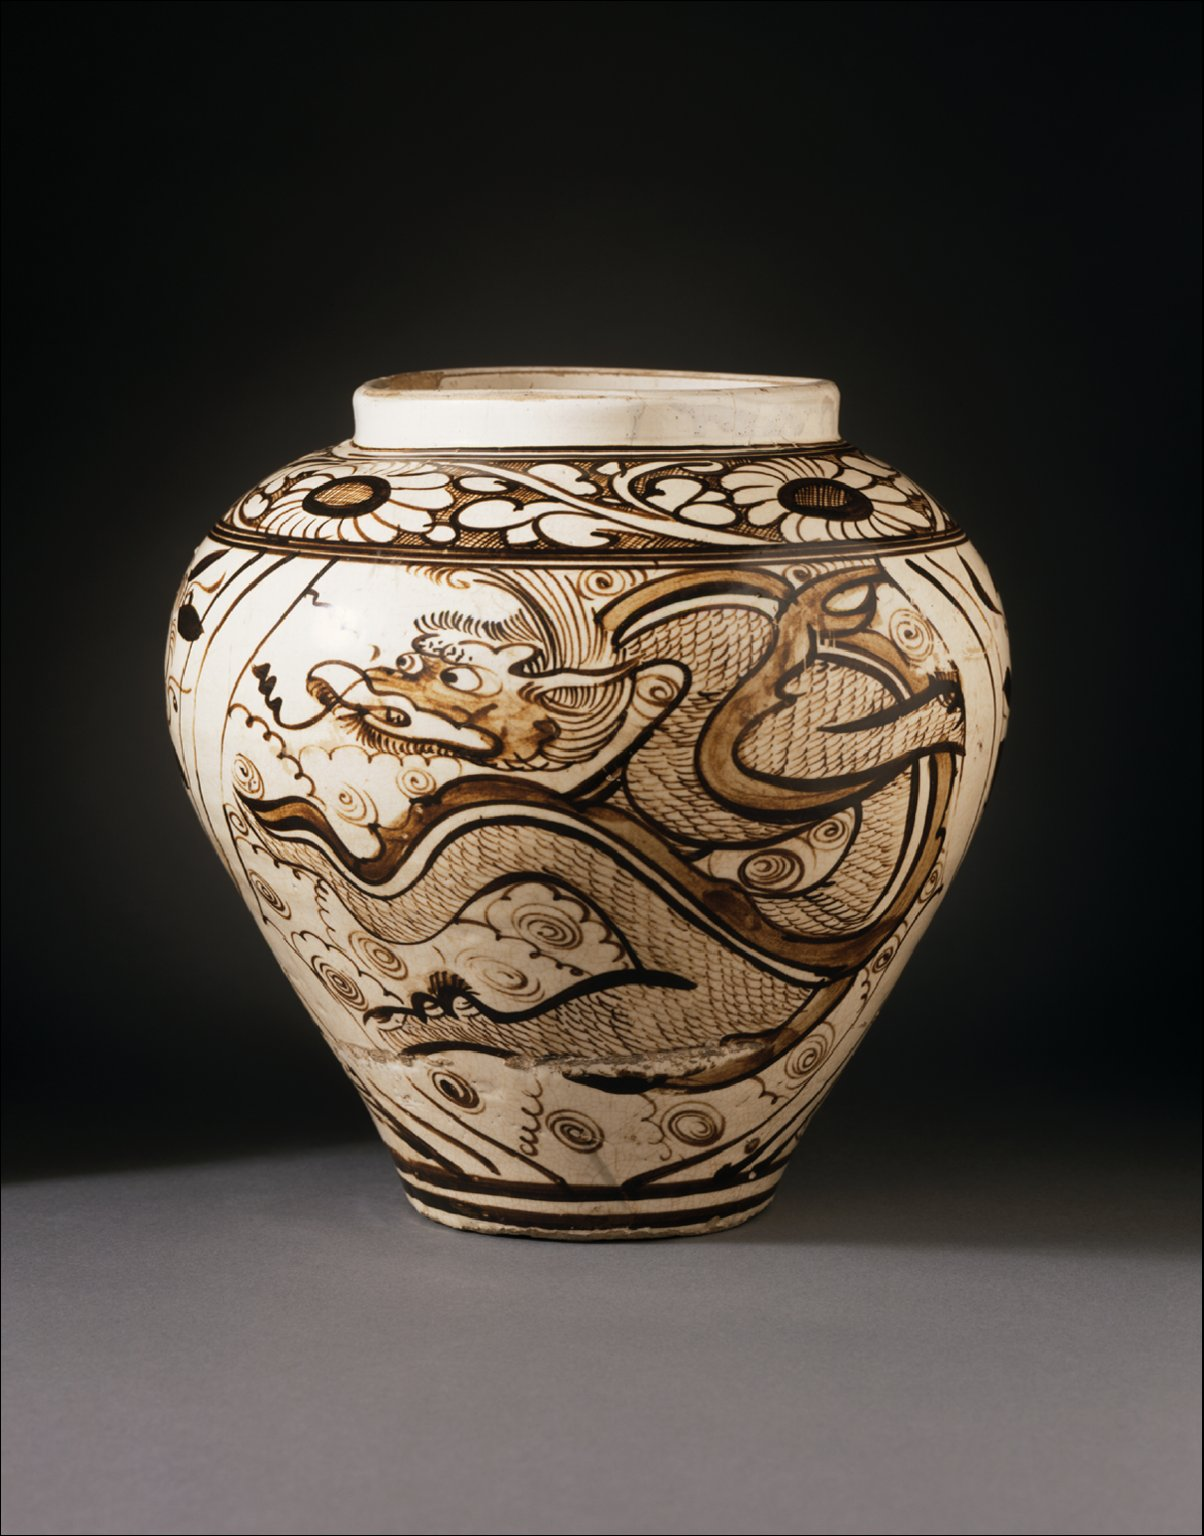 Jar (Ping) with Dragon and Clouds